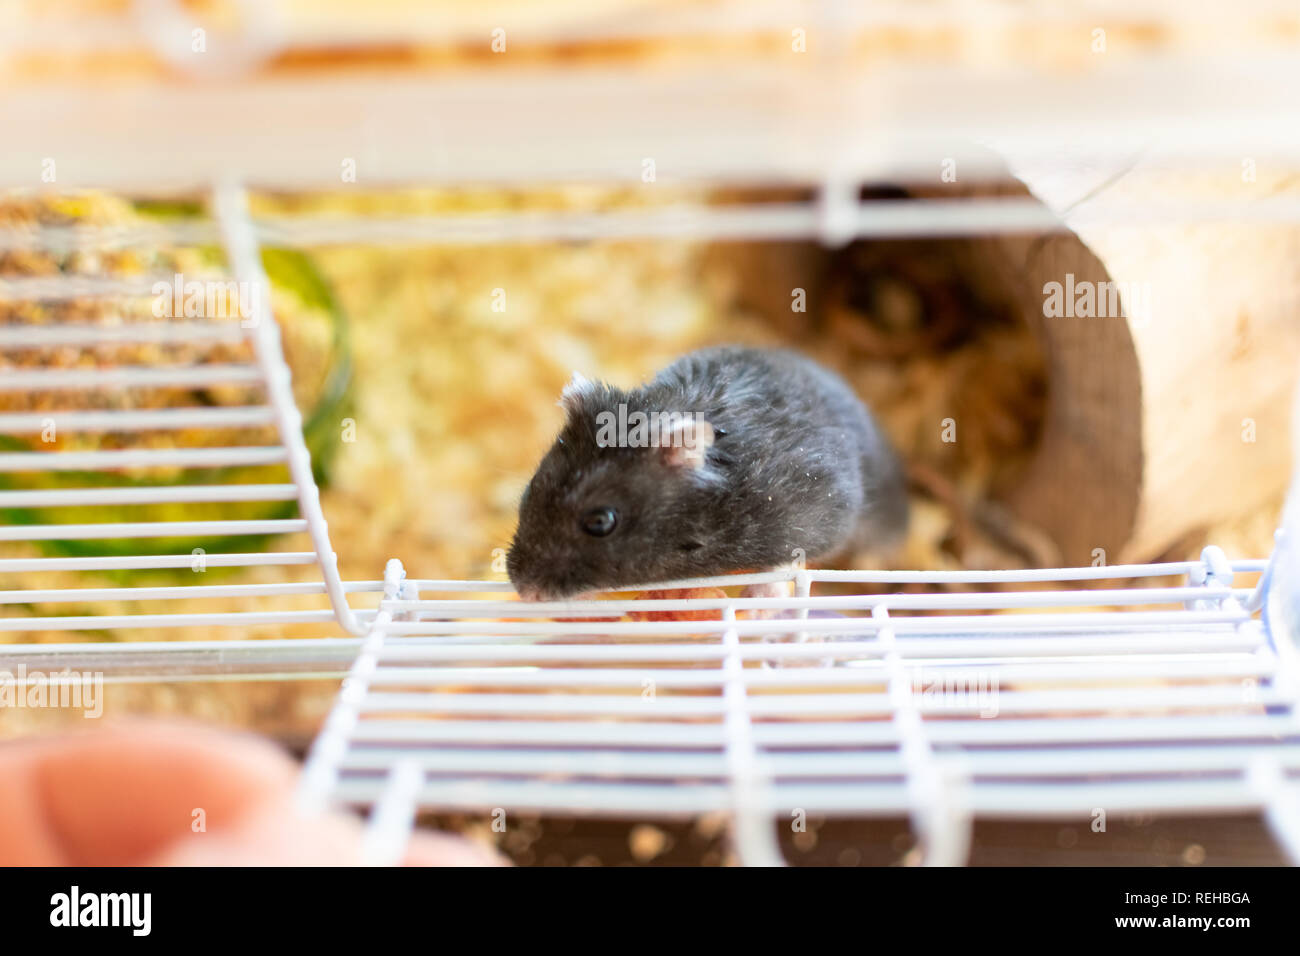 A hamster in a cage trying shyly to get free Stock Photo: 232722234